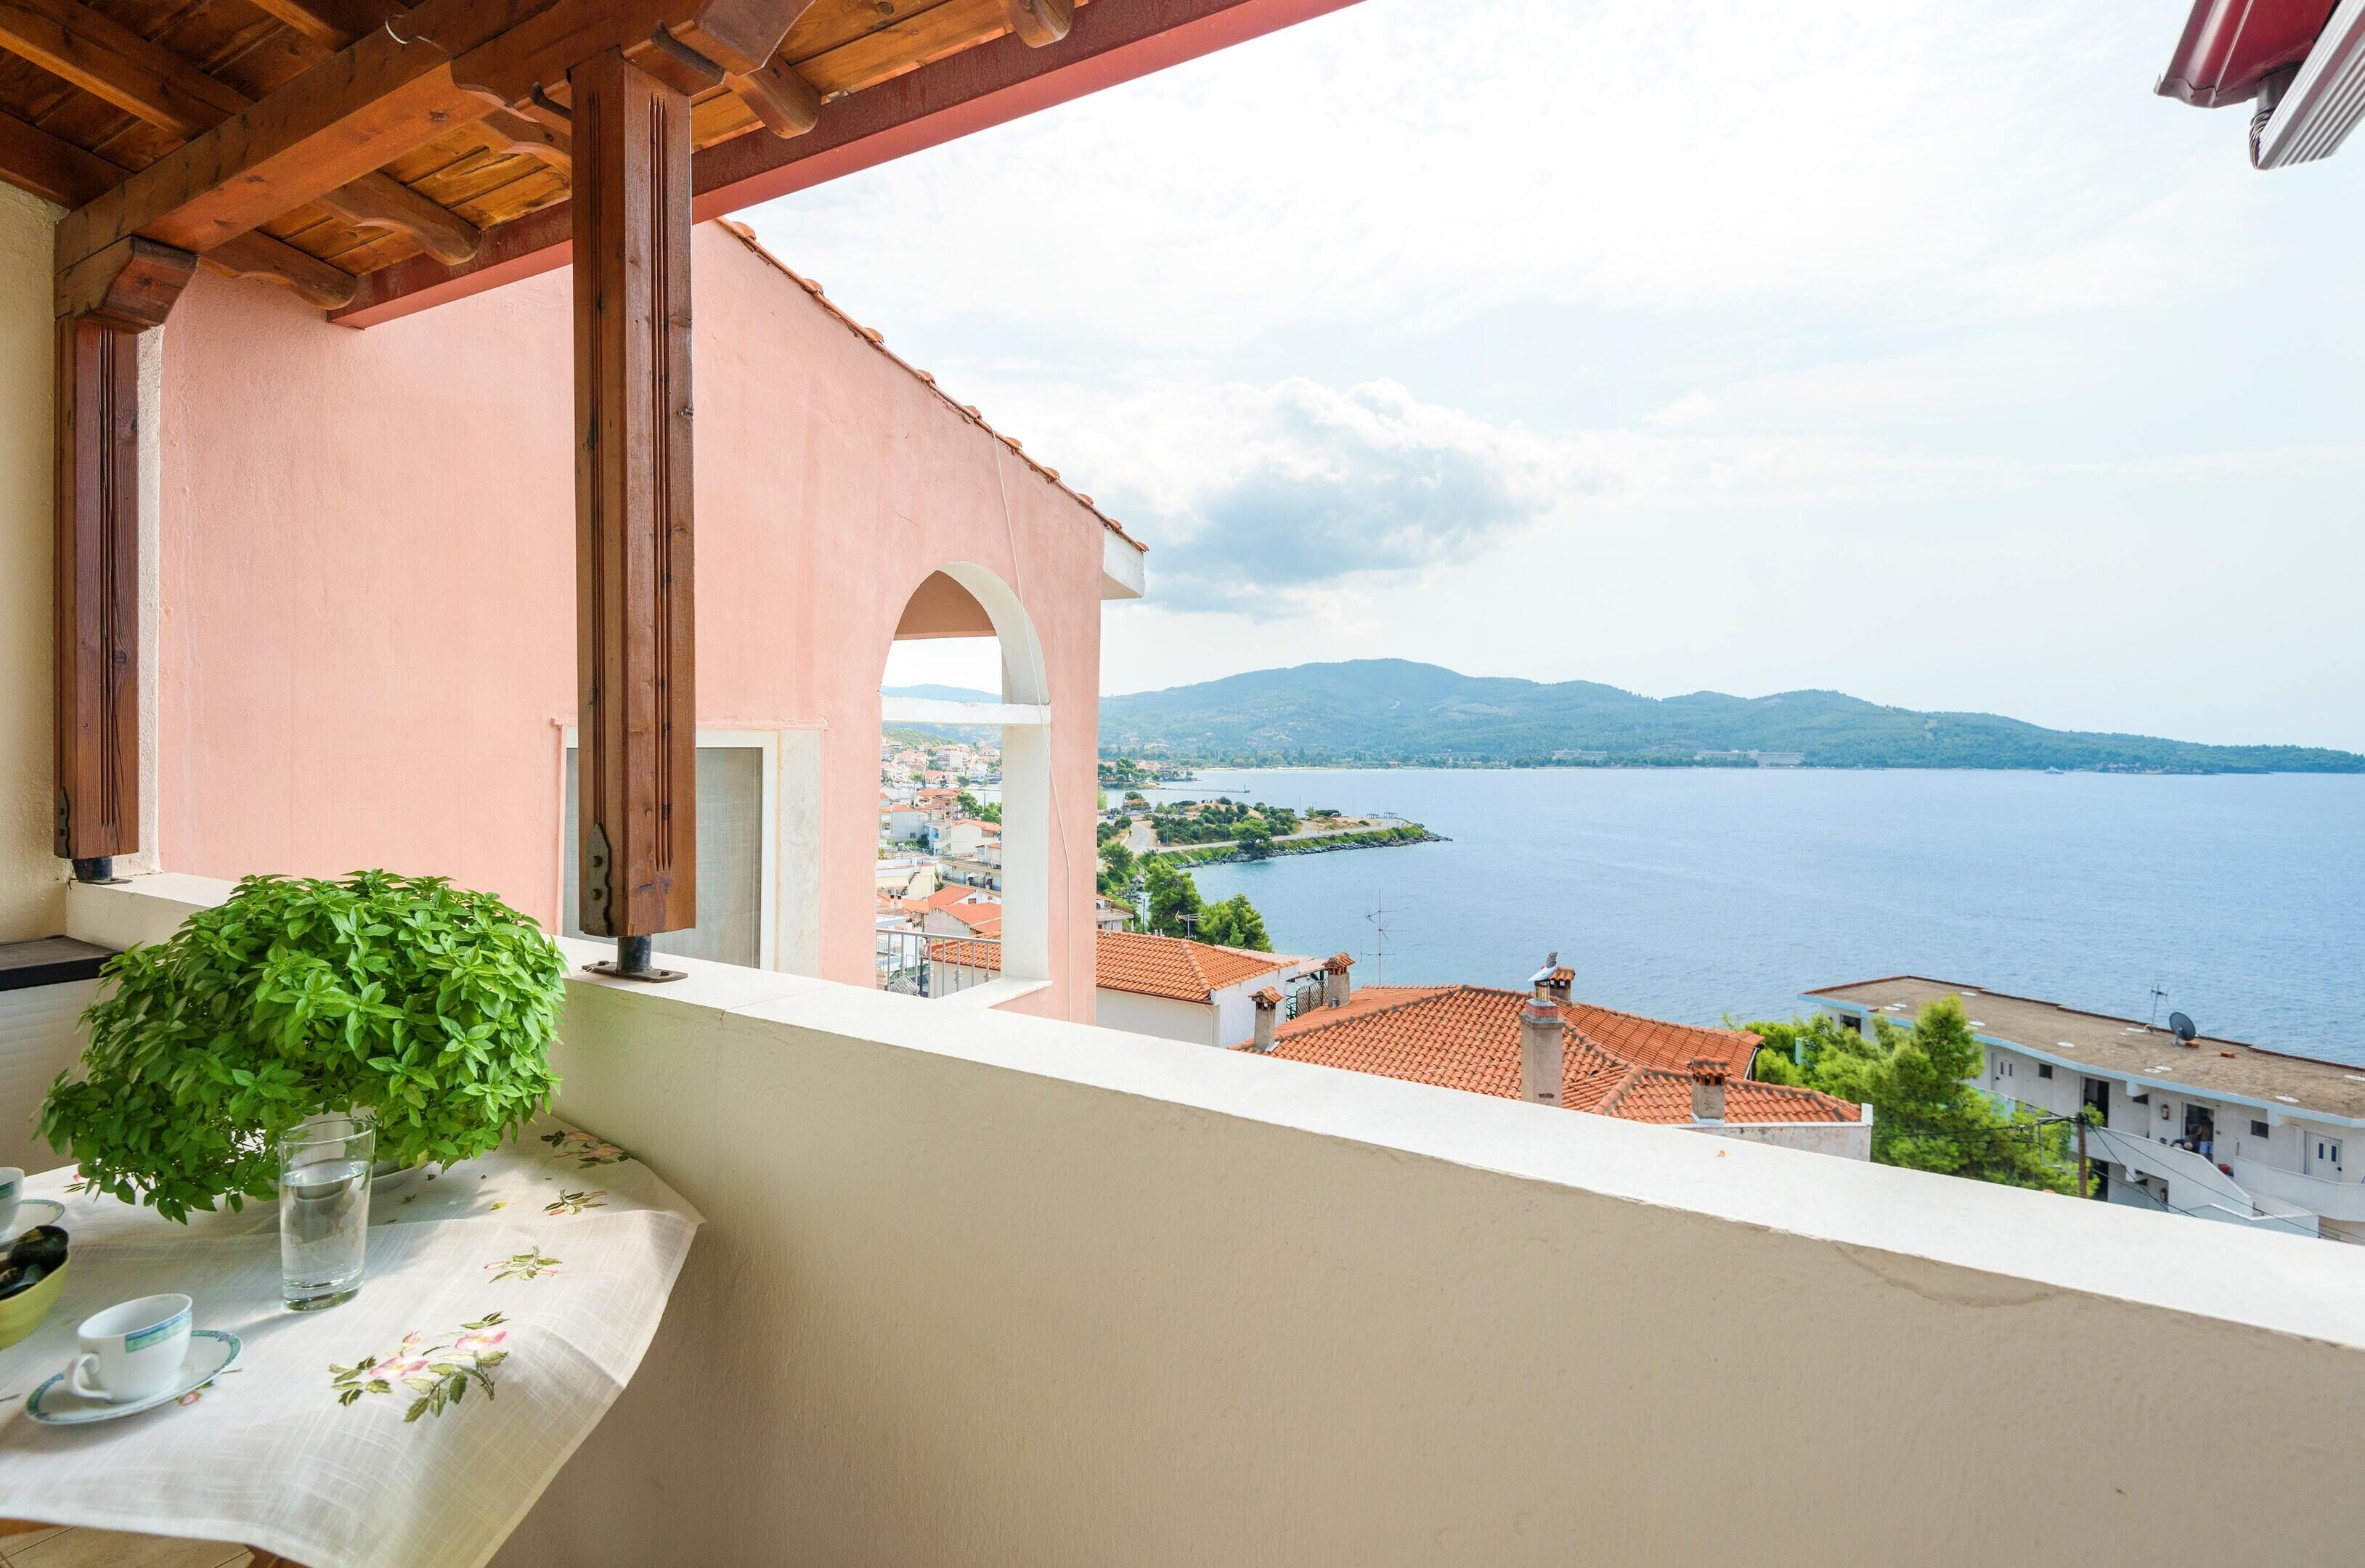 House With 2 Bedrooms In Neos Marmaras,  With Wonderful Sea View,  Enclosed Garden And Wifi - 500 M Fr